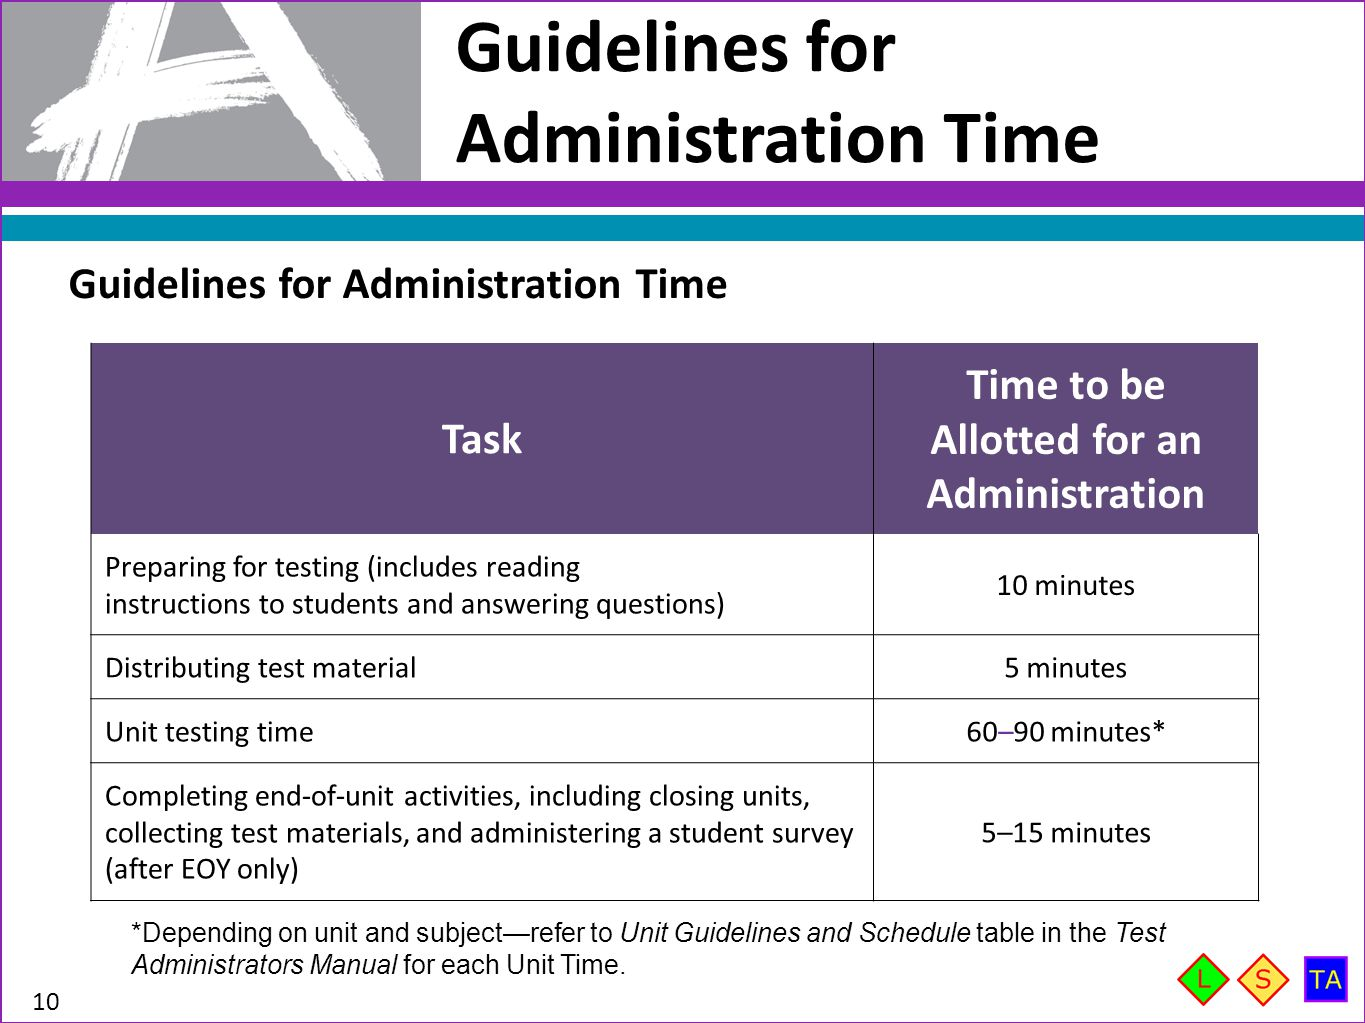 Guidelines for Administration Time